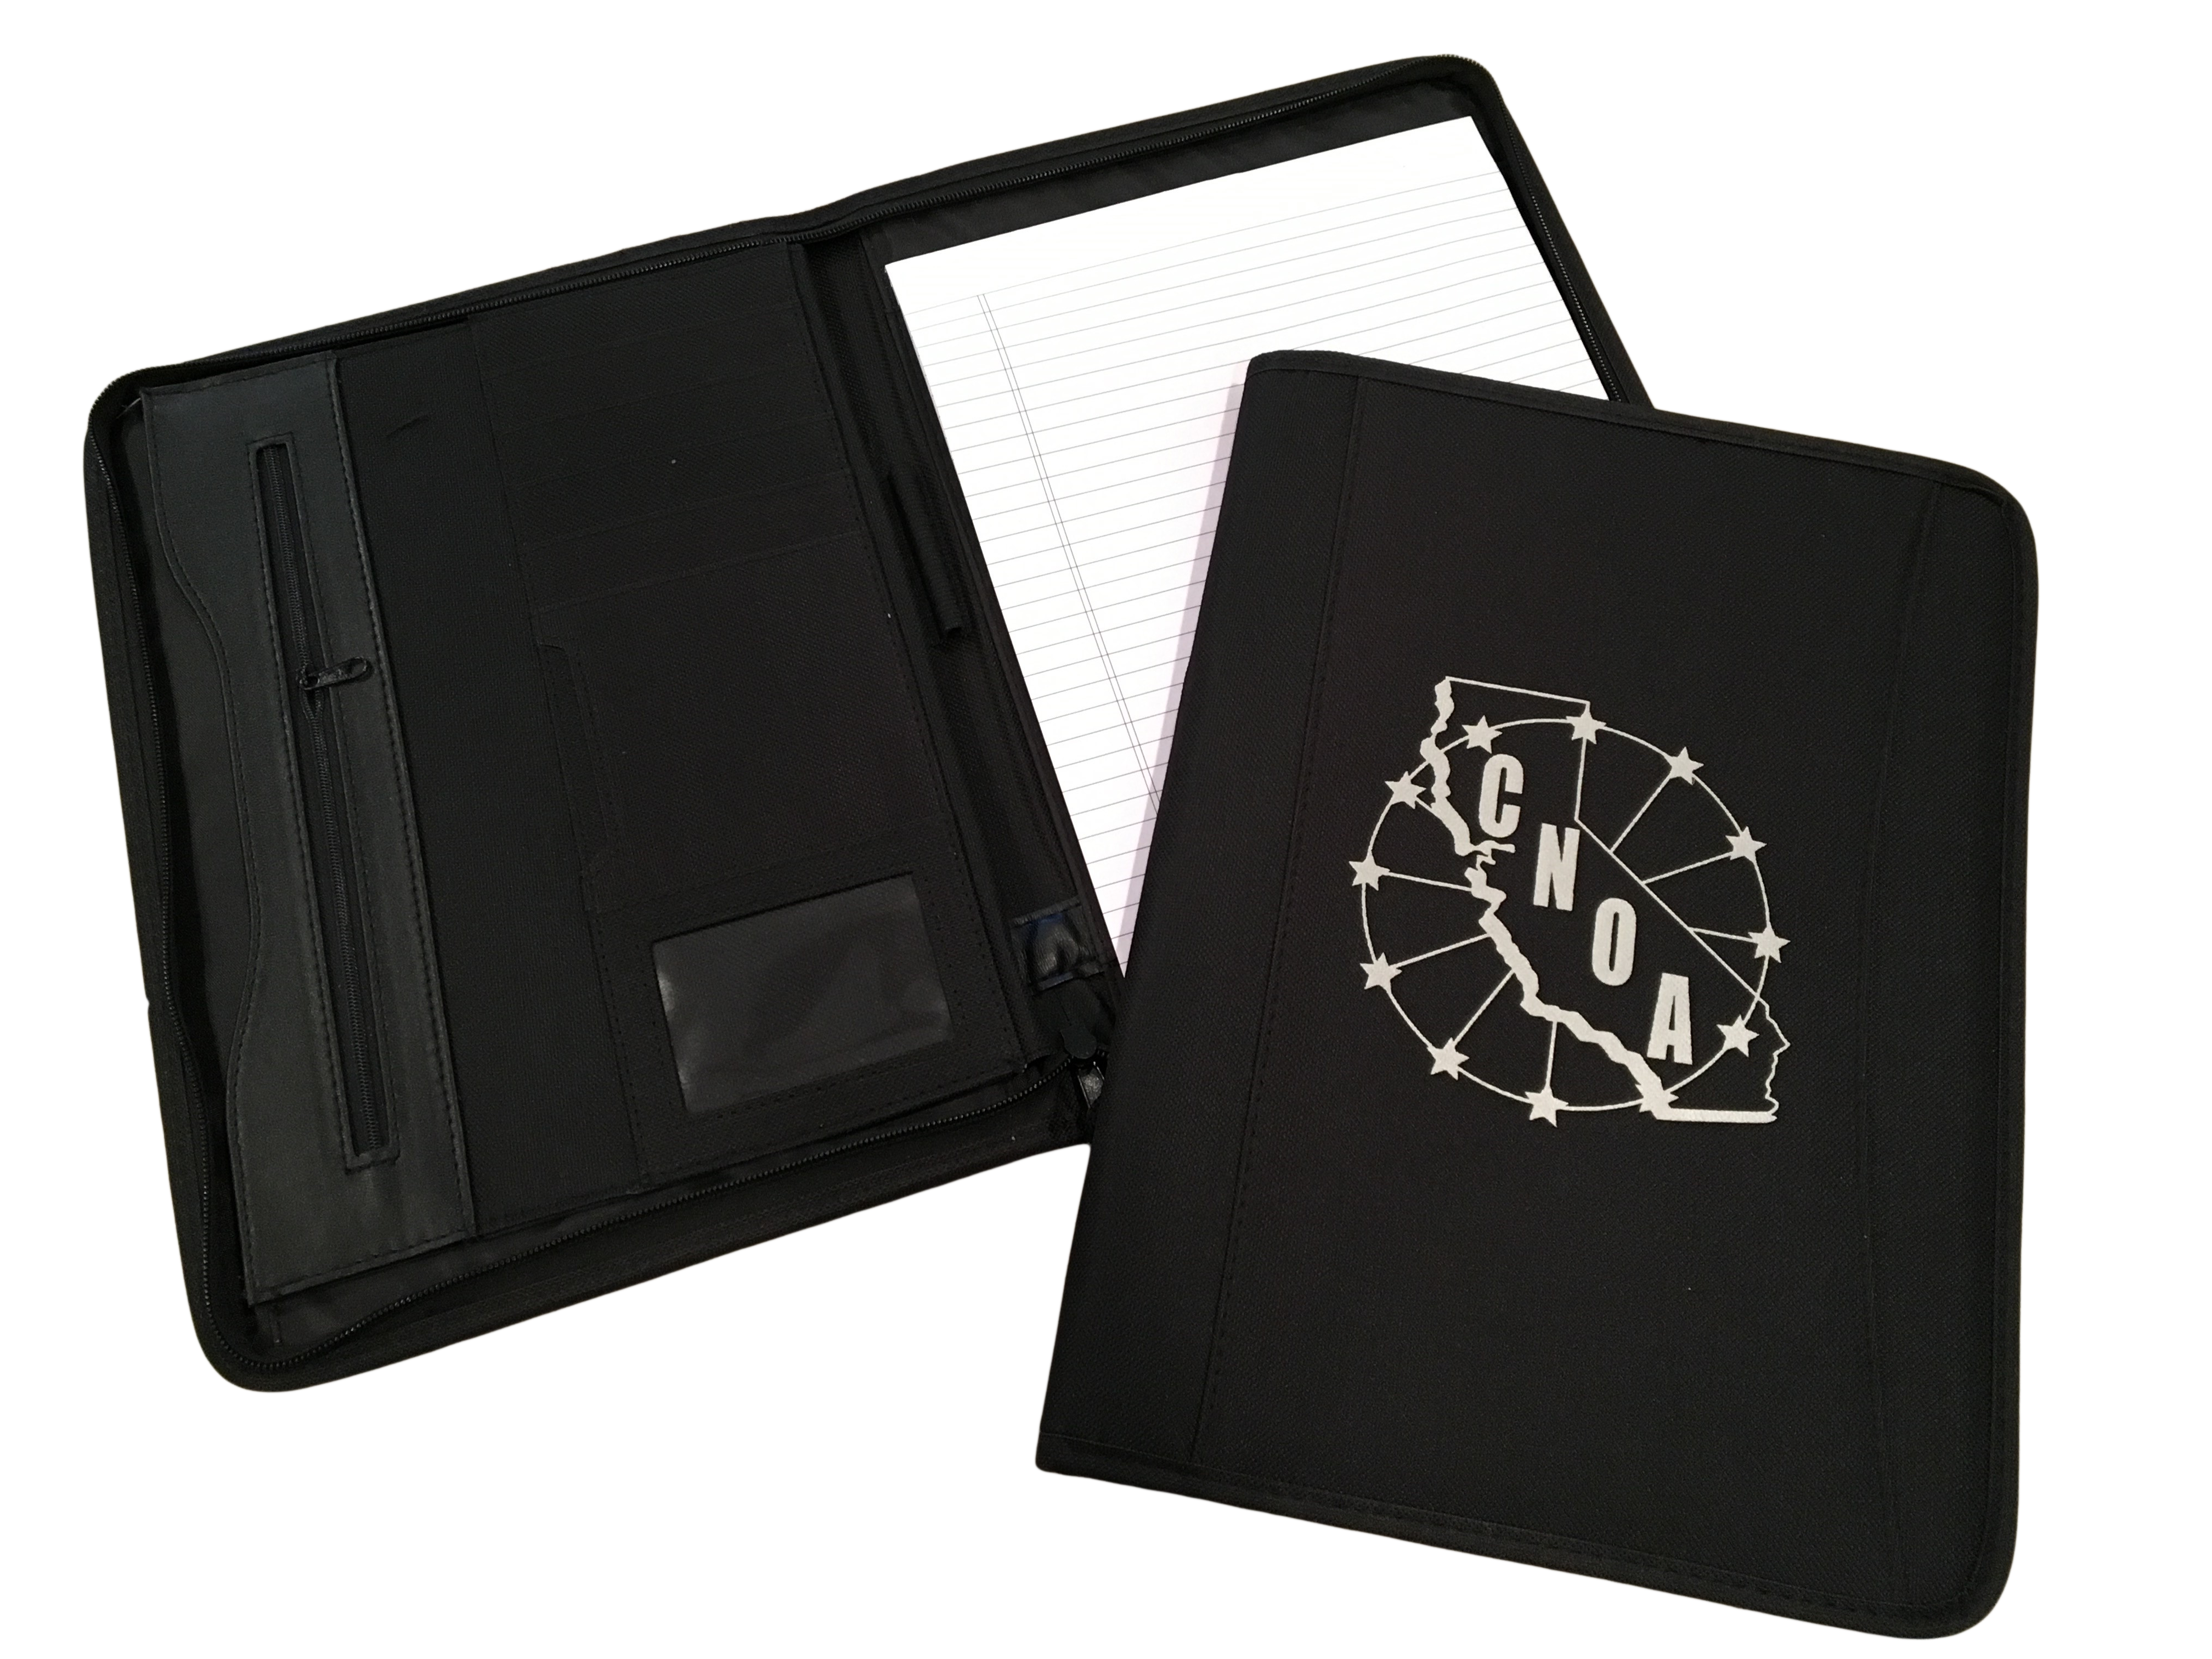 California narcotic officers association official merchandise zip around padfolio with inside flap pockets to hold papers and business cards pen holder letter size notepad slot notepad included reheart Choice Image